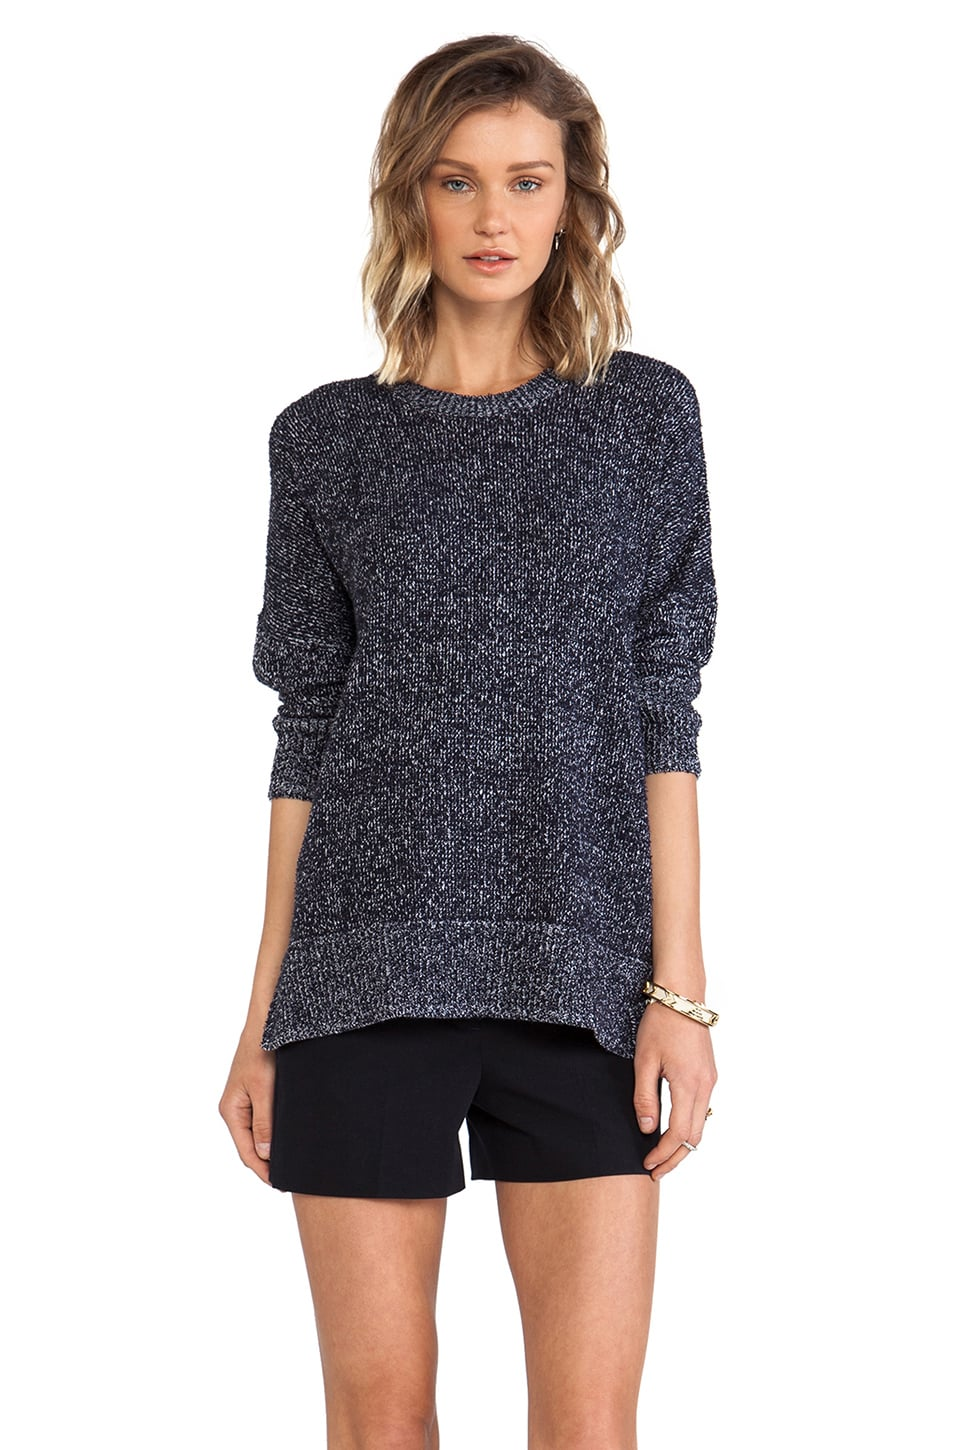 Theory Hesterly Short Sleeve Sweater in Armada Blue & Ivory